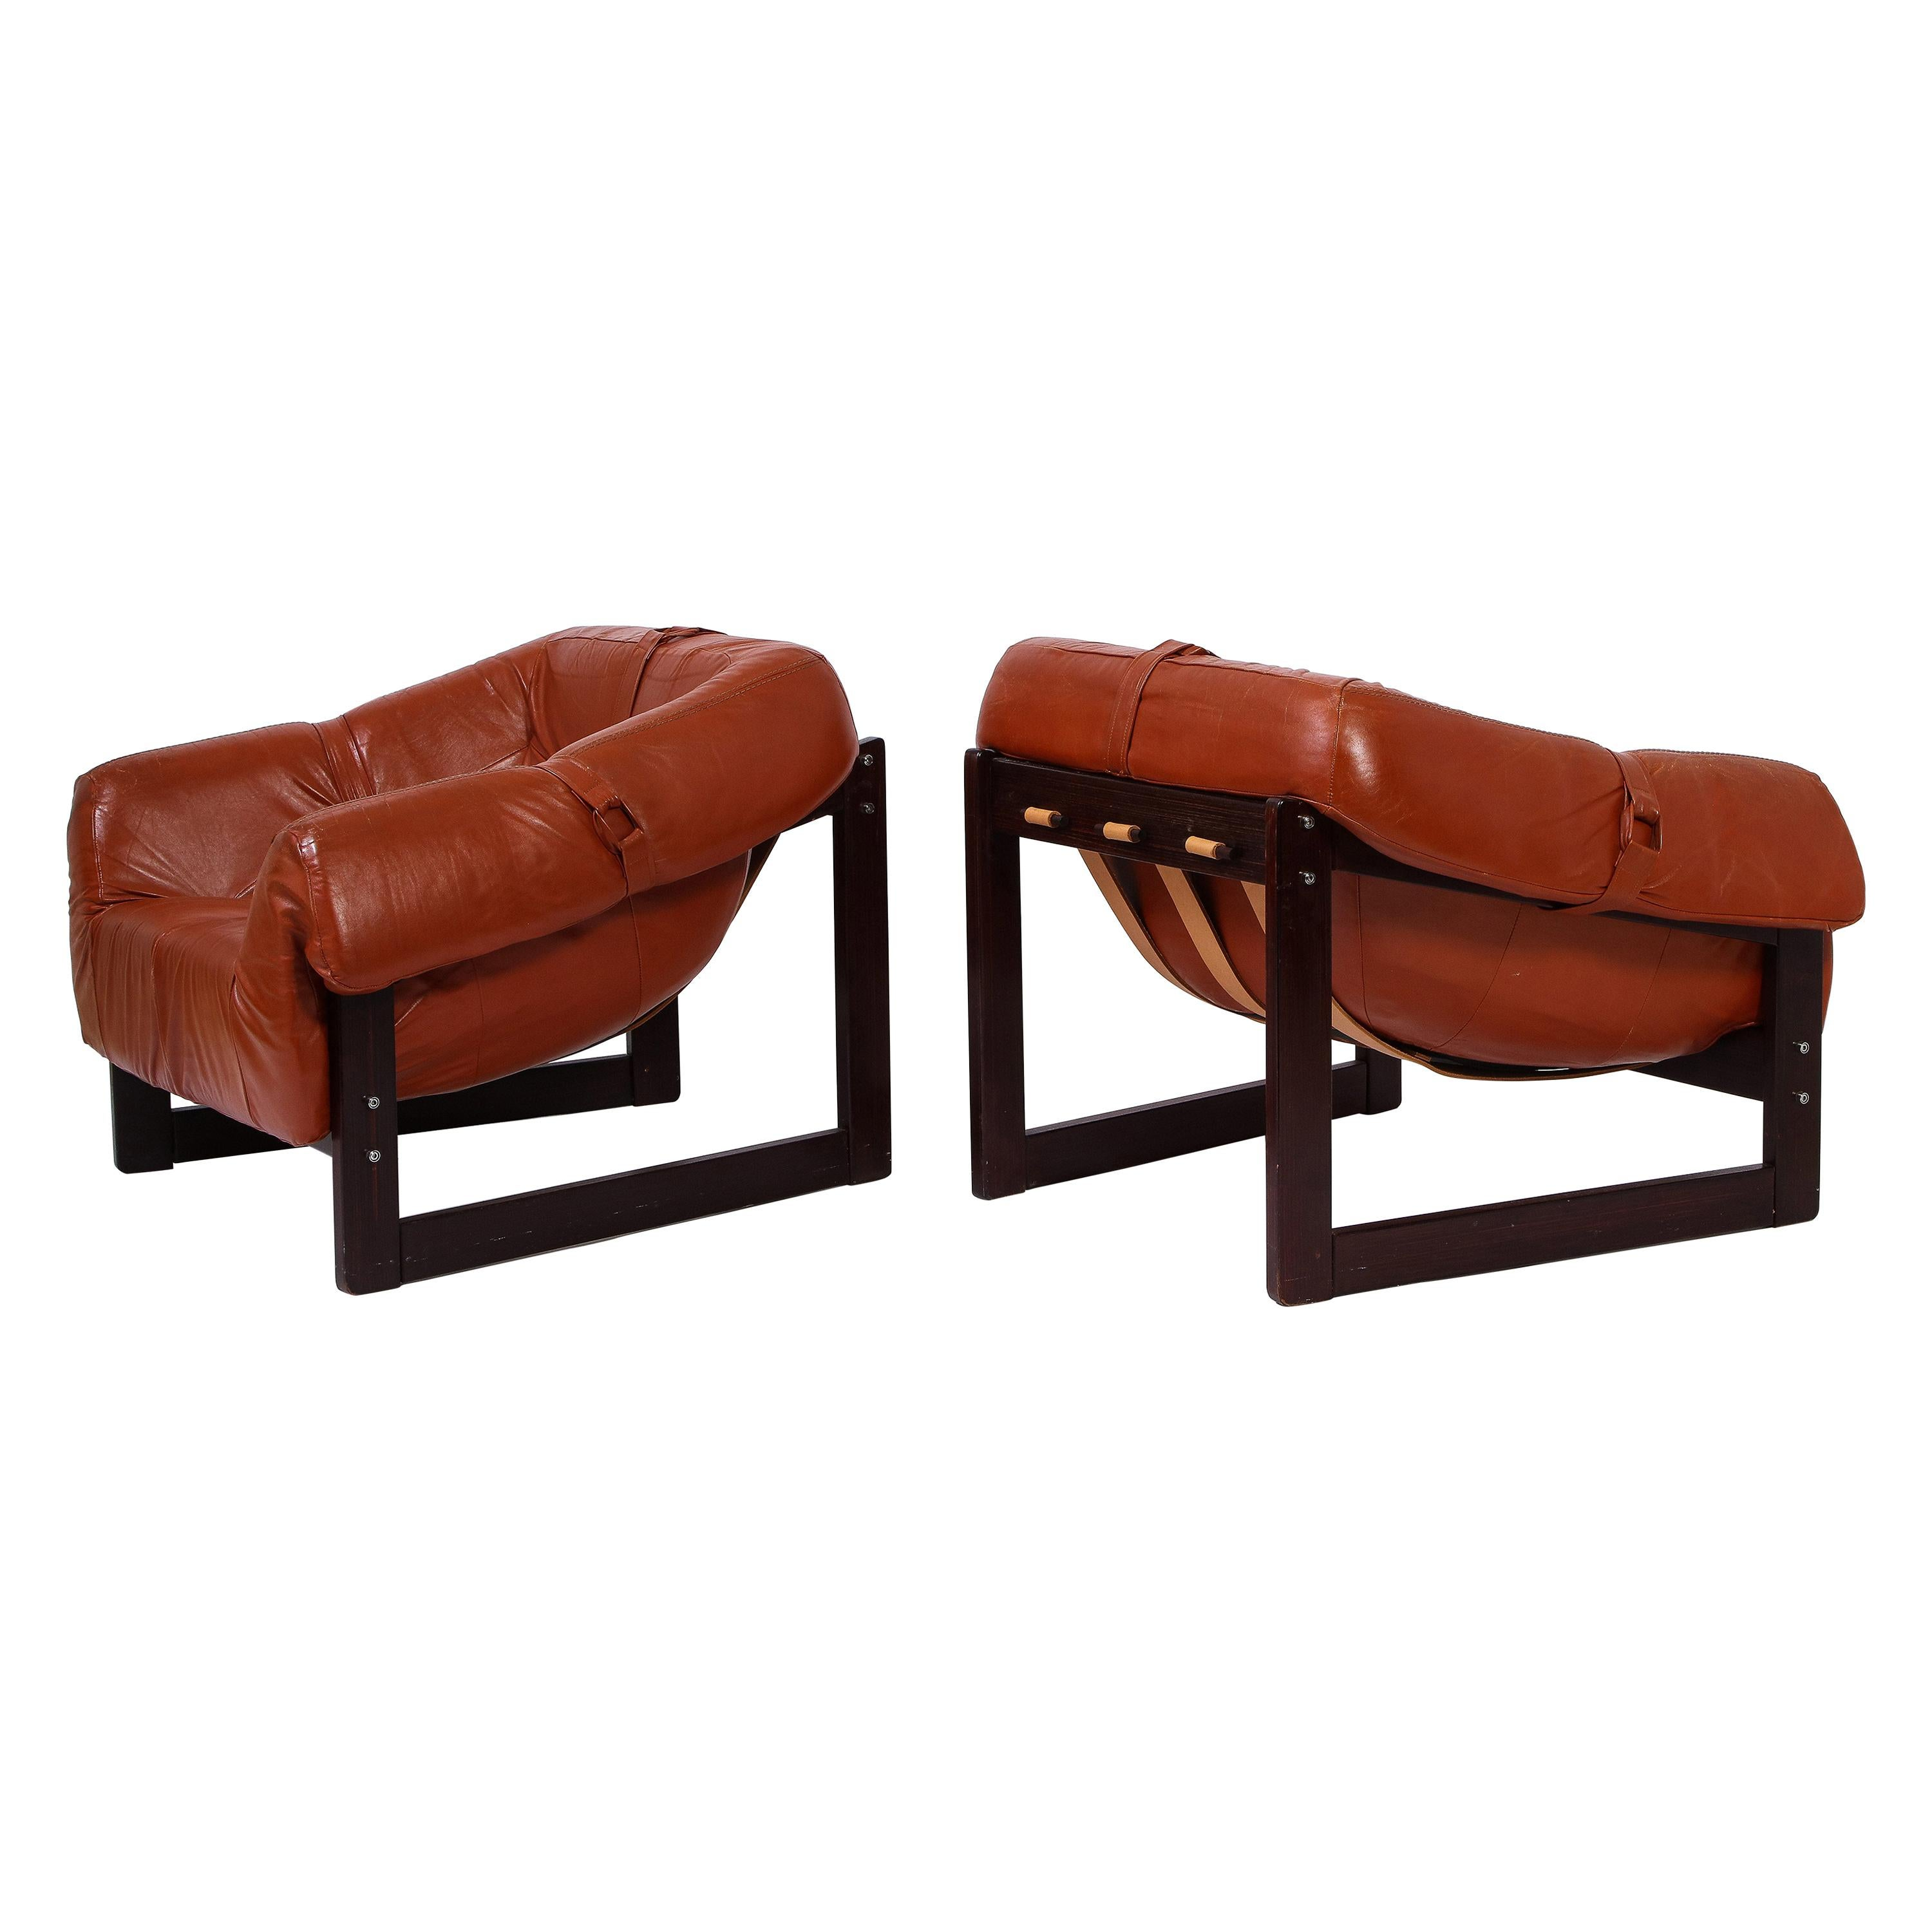 Percival Lafer Loungers Model MP-091, Cherry and Caramel Leather, Brazil, 1960s